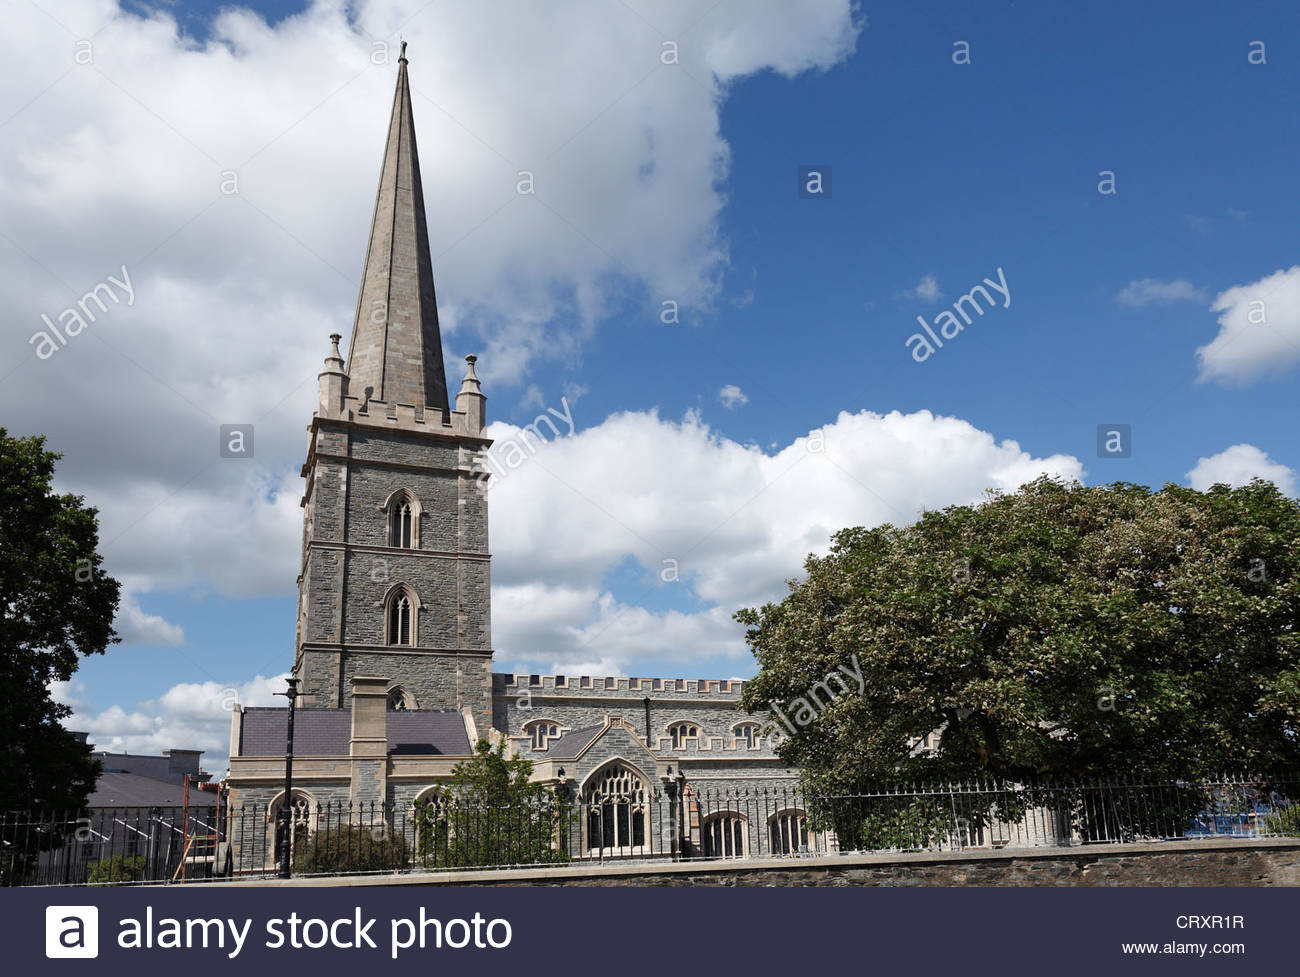 United Kingdom, Northern Ireland, County Derry, View of cathedral - Stock Image